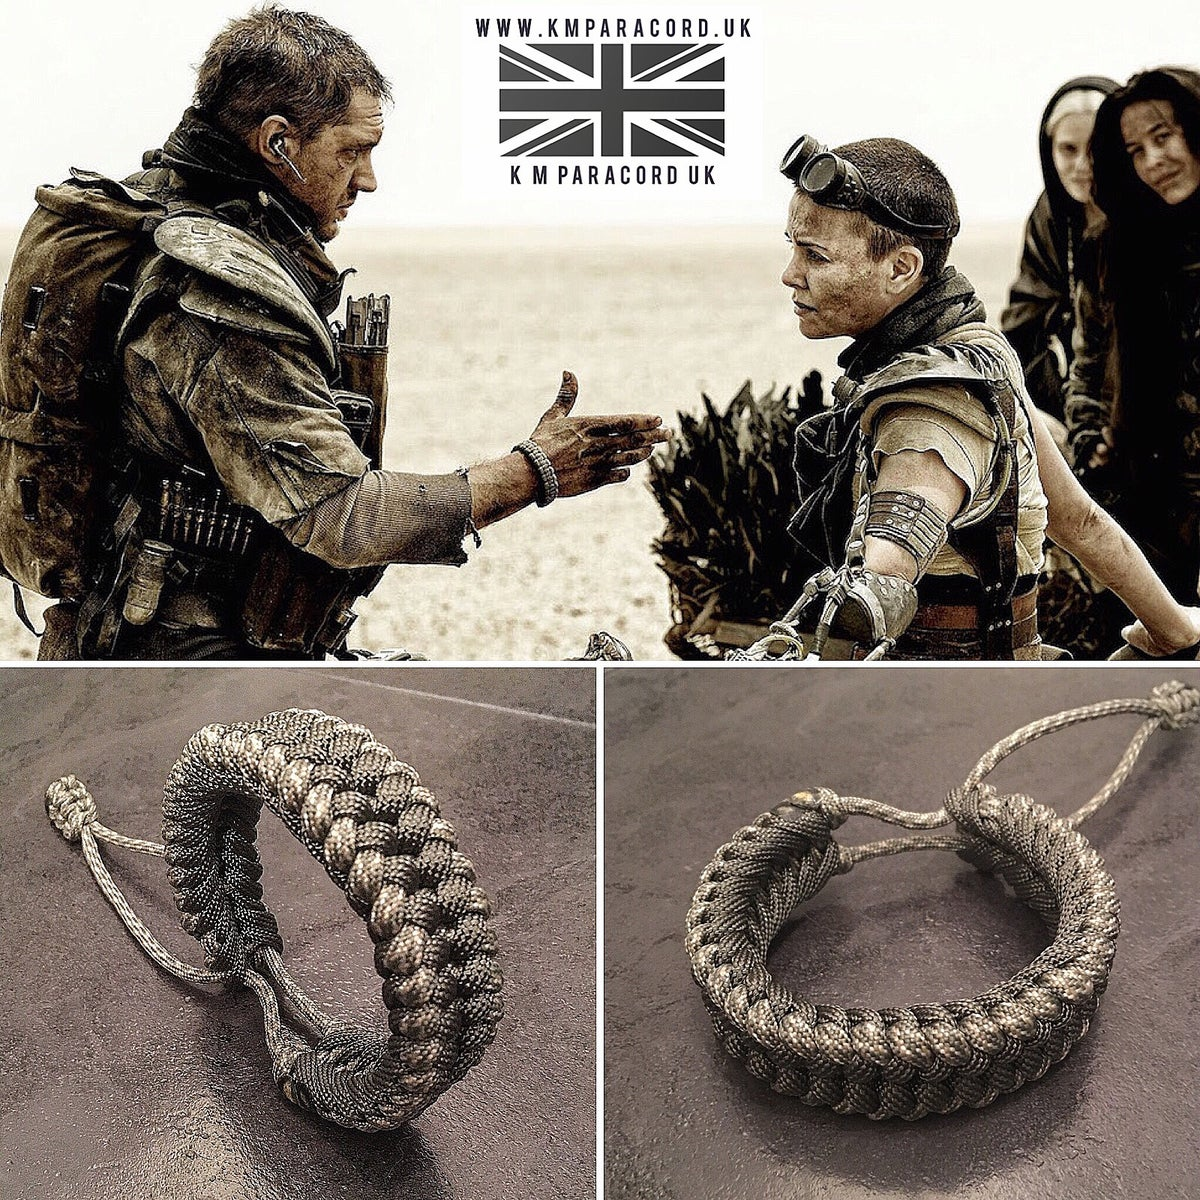 Image of KMP 'MAD MAX' style Sanctified Wristband